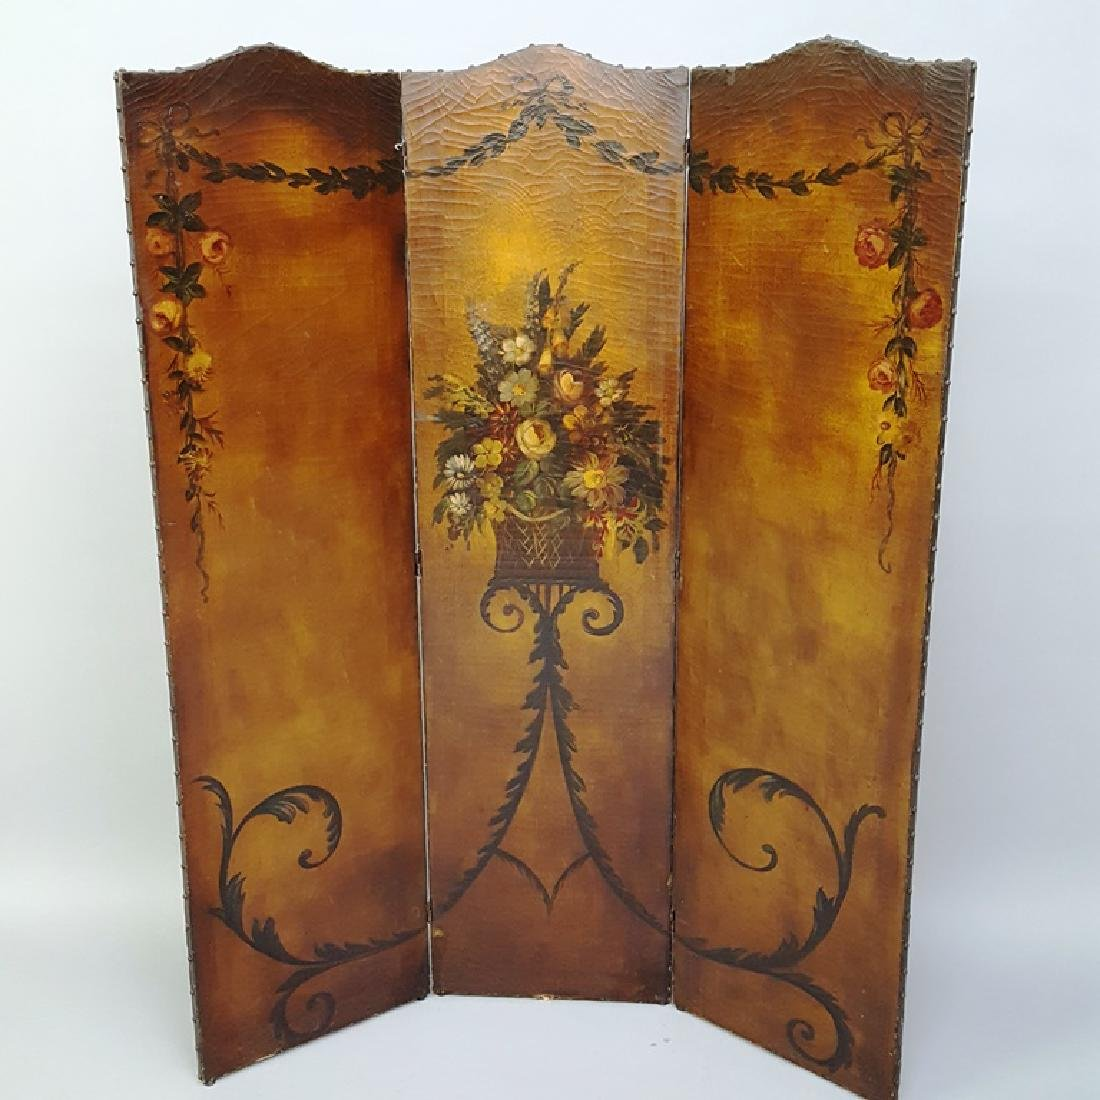 Hand Painted Circa 1920's Leather Folding Screen with